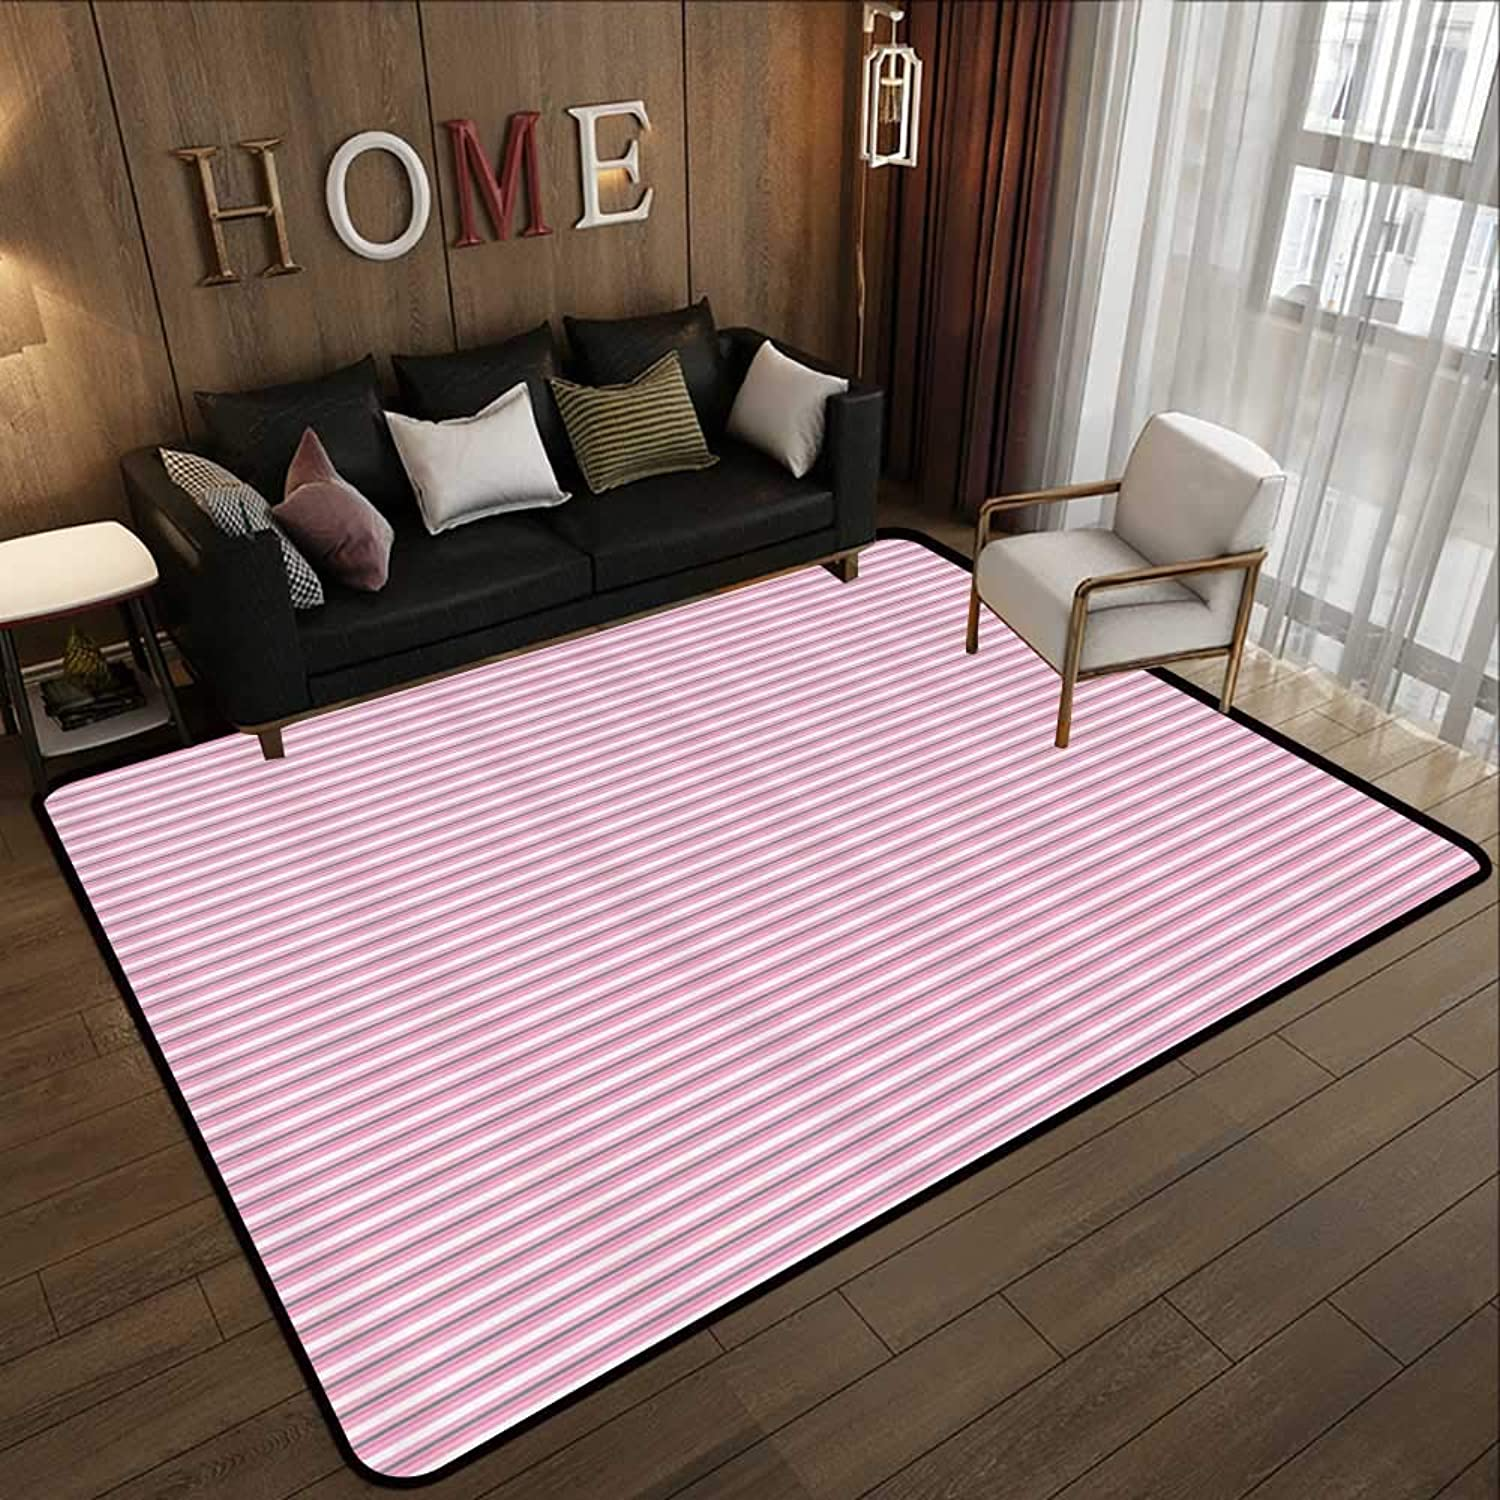 Carpet mat,Geometric,Striped Pattern with Pink Tones Thick and Tiny Lines Modern Illustration,Pink Grey White 47 x 71  Floor Mat Entrance Doormat